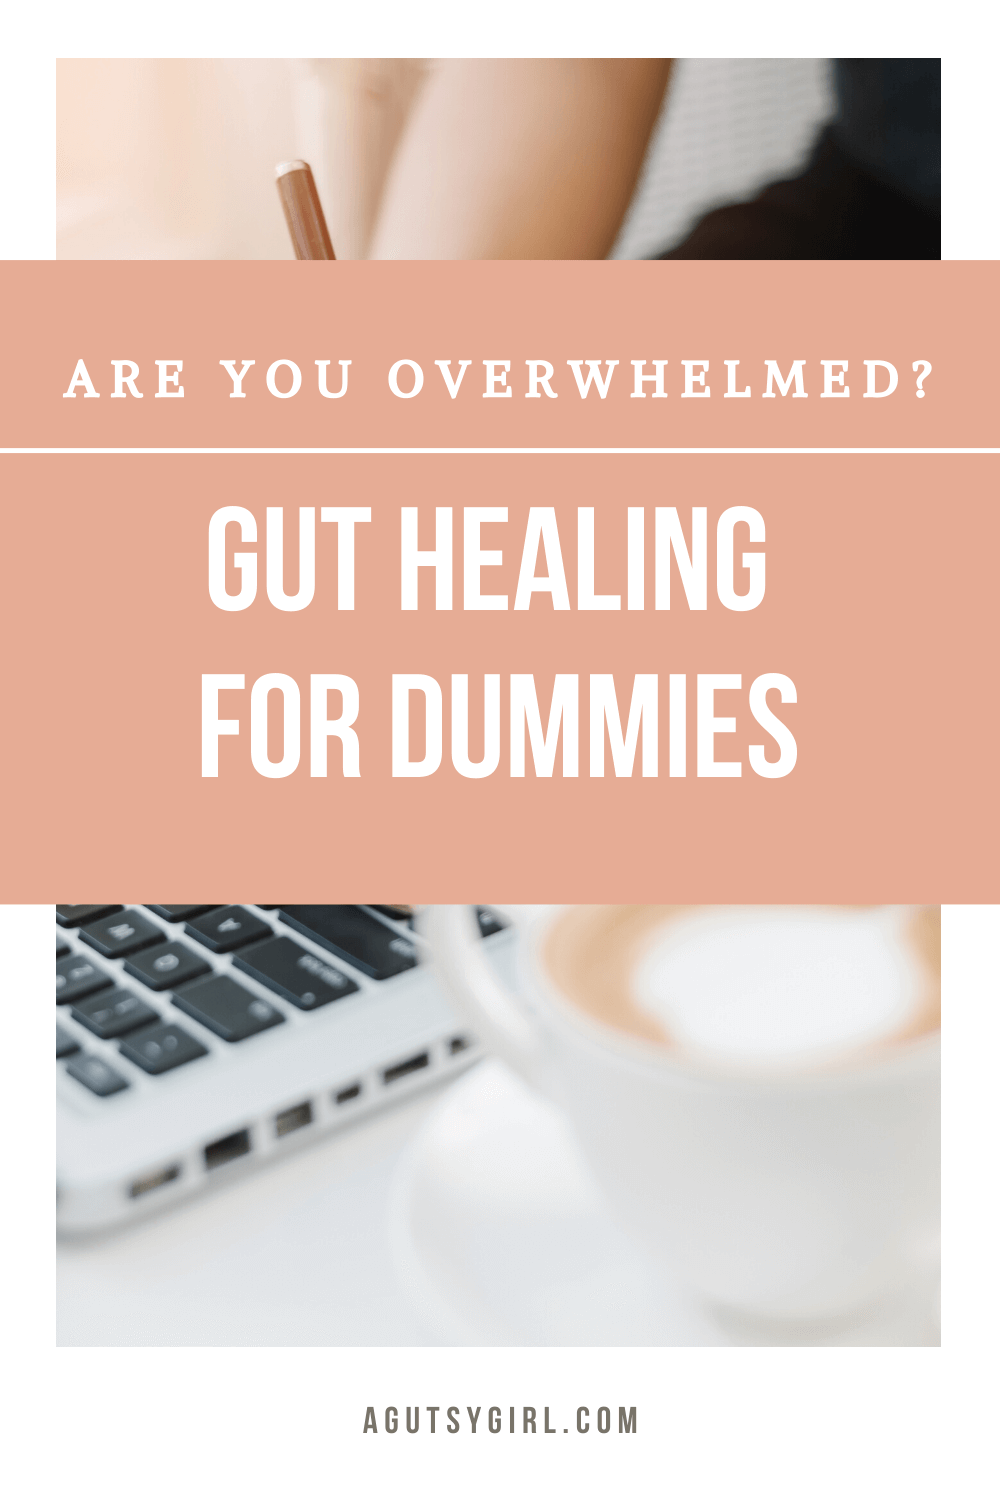 Gut Healing for Dummies agutsygirl.com #guthealing #dummies #gut #ibs